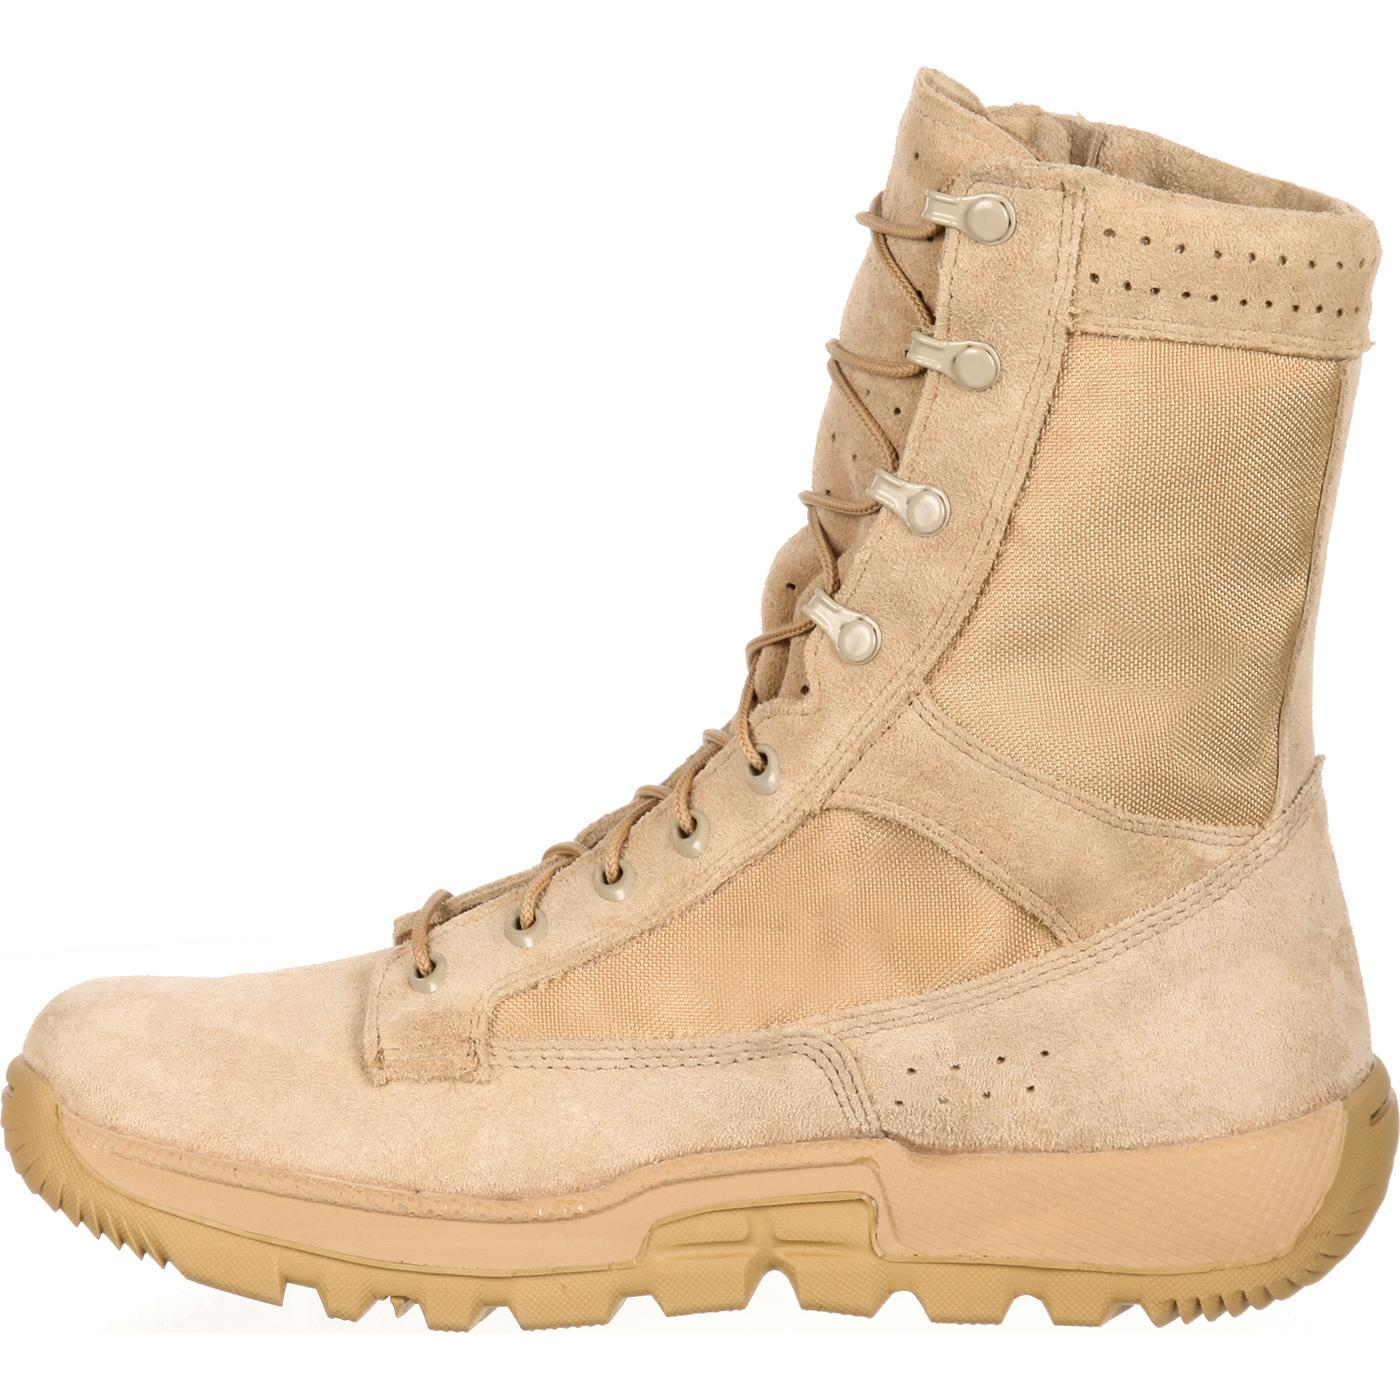 Rocky: Lightweight Desert Tan Commercial Military Boots